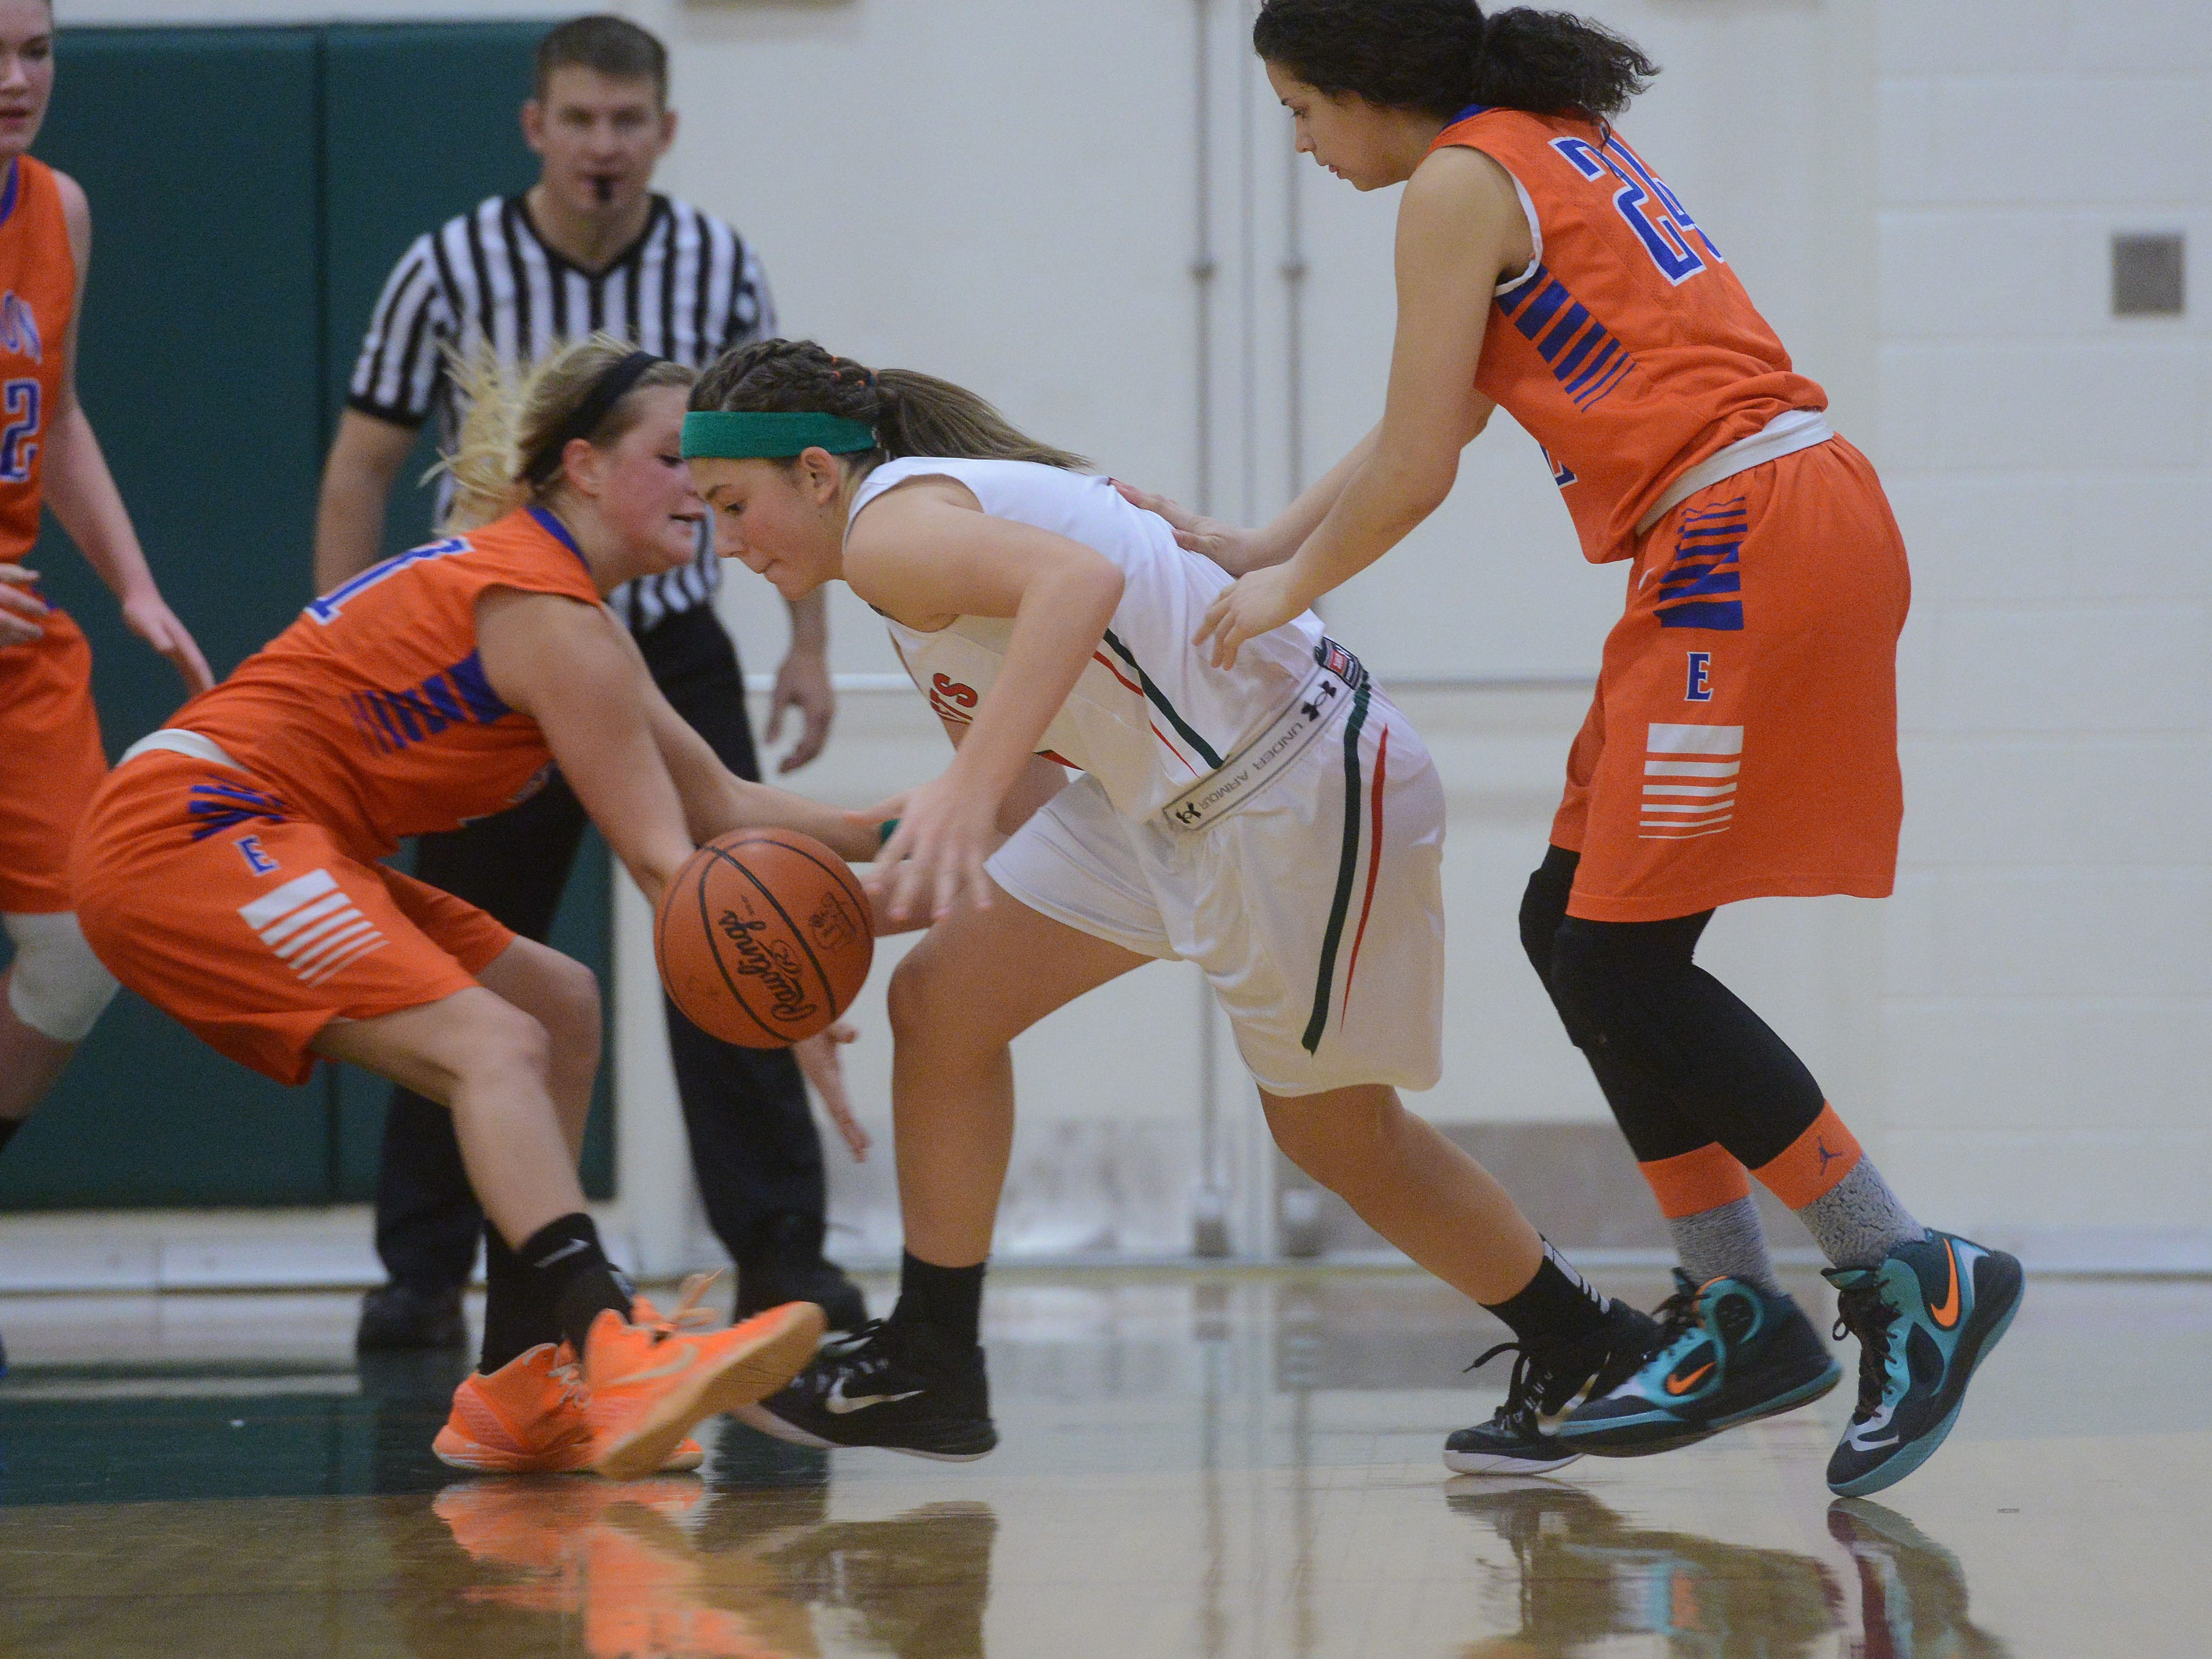 Oak Harbor's Emma Barney is fouled as she comes up with a turnover late in the fourth quarter of a basketball game against Edison on Thursday, Dec 4, 2014.